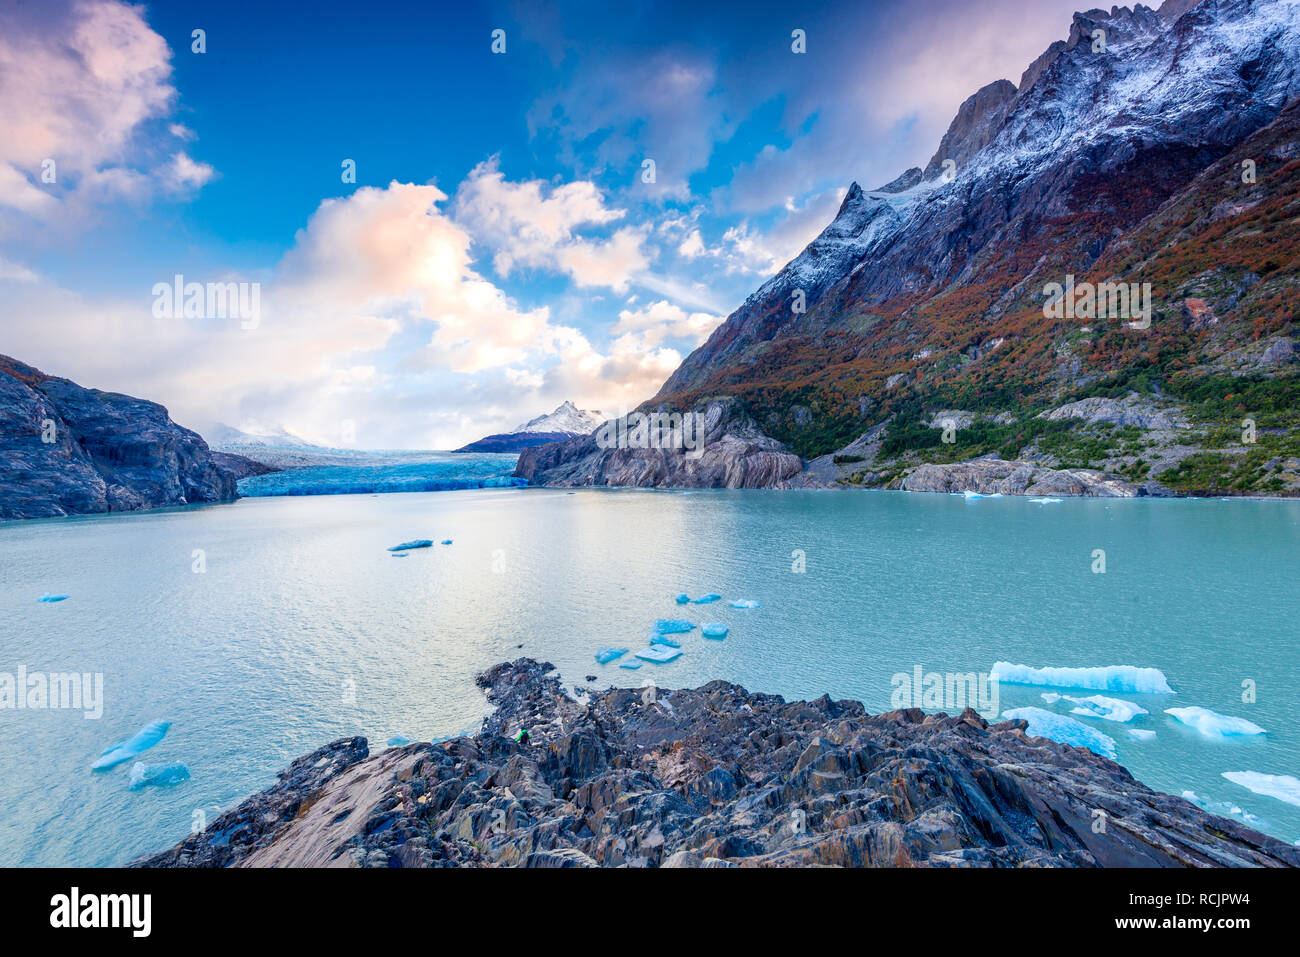 Patagonia, Chile, Grey Glacier  in the Southern Patagonian Ice Field on Cordillera del Paine, South America - Stock Image